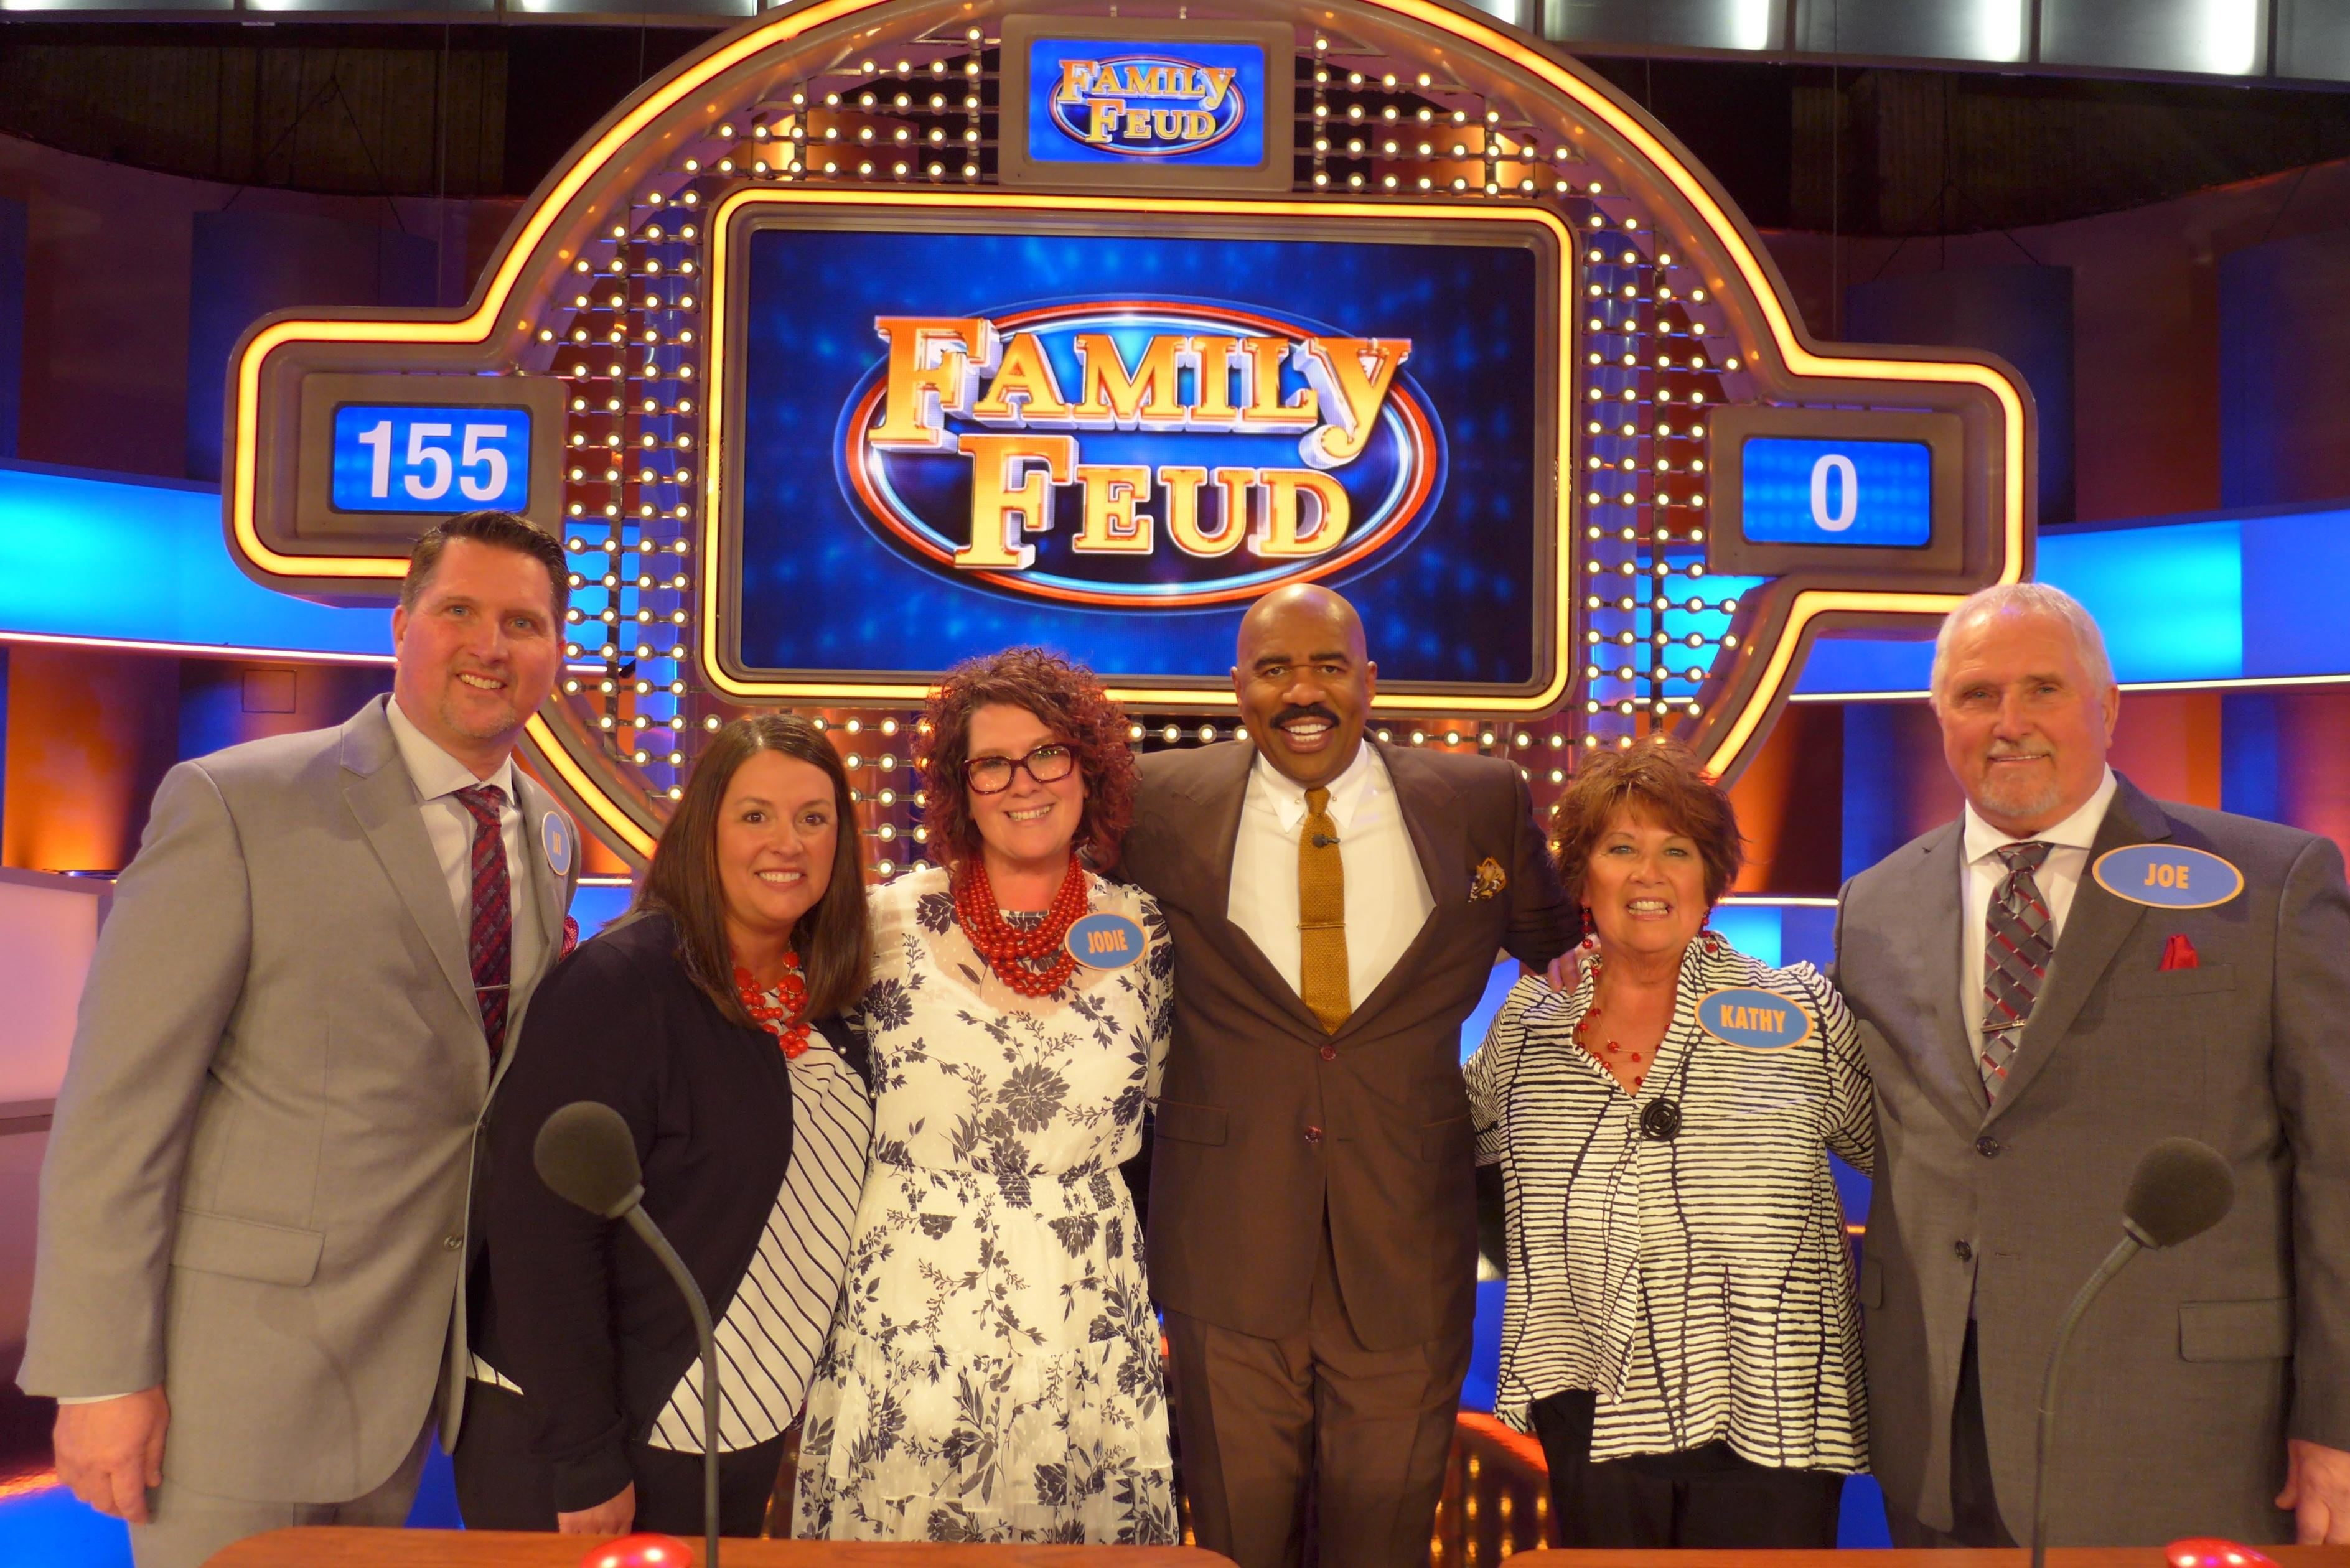 Watch Germantown's own Olszewski Family compete on FAMILY FEUD Thursday, October 3rd at 6:30pm on CW18!